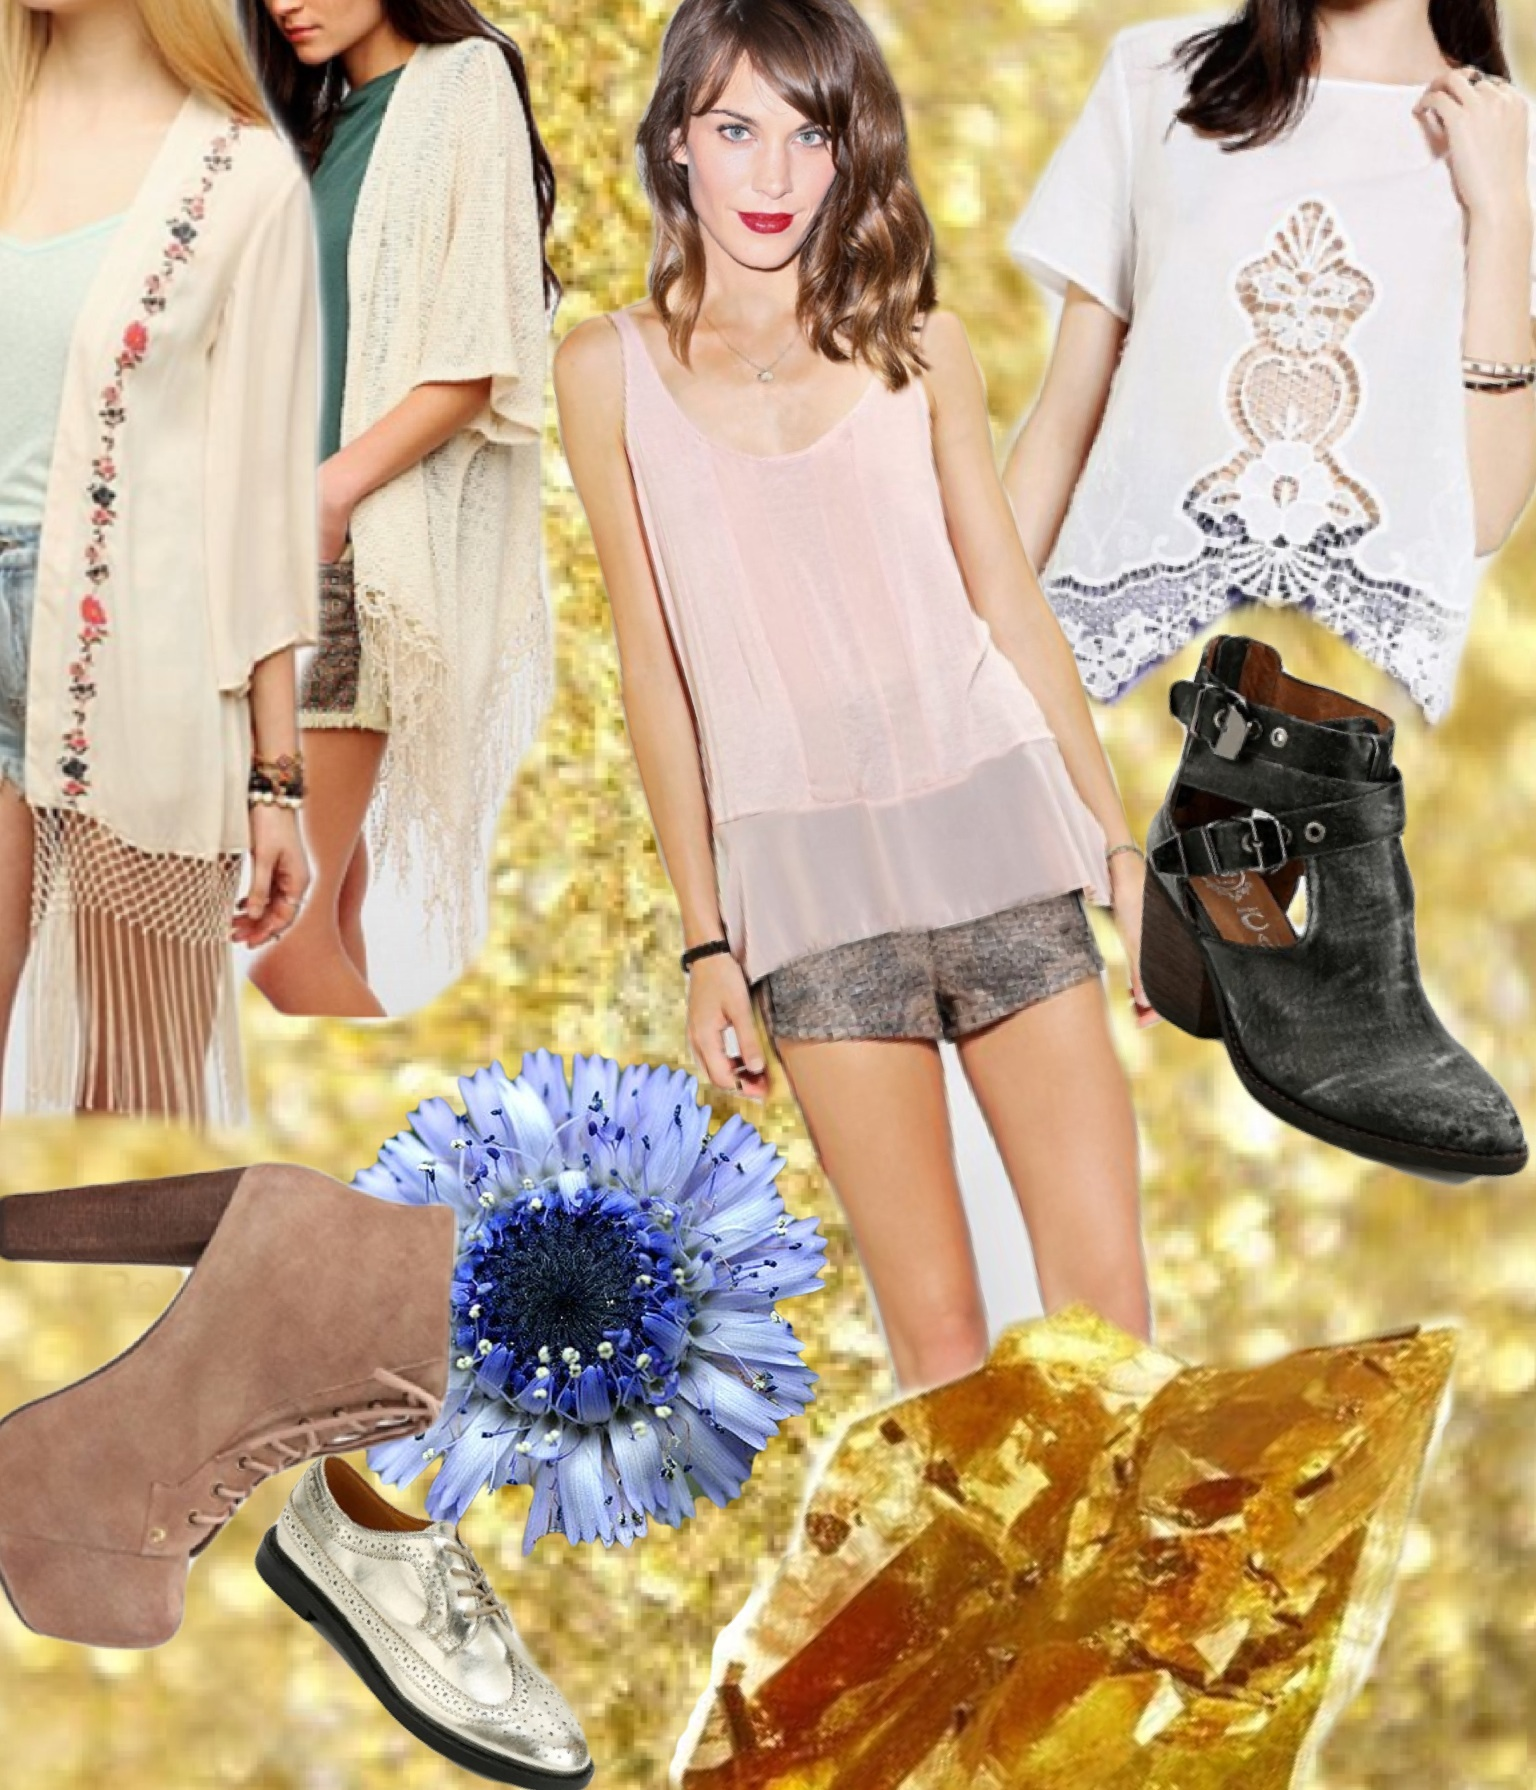 Urban outfitters 1920s inspired grunge